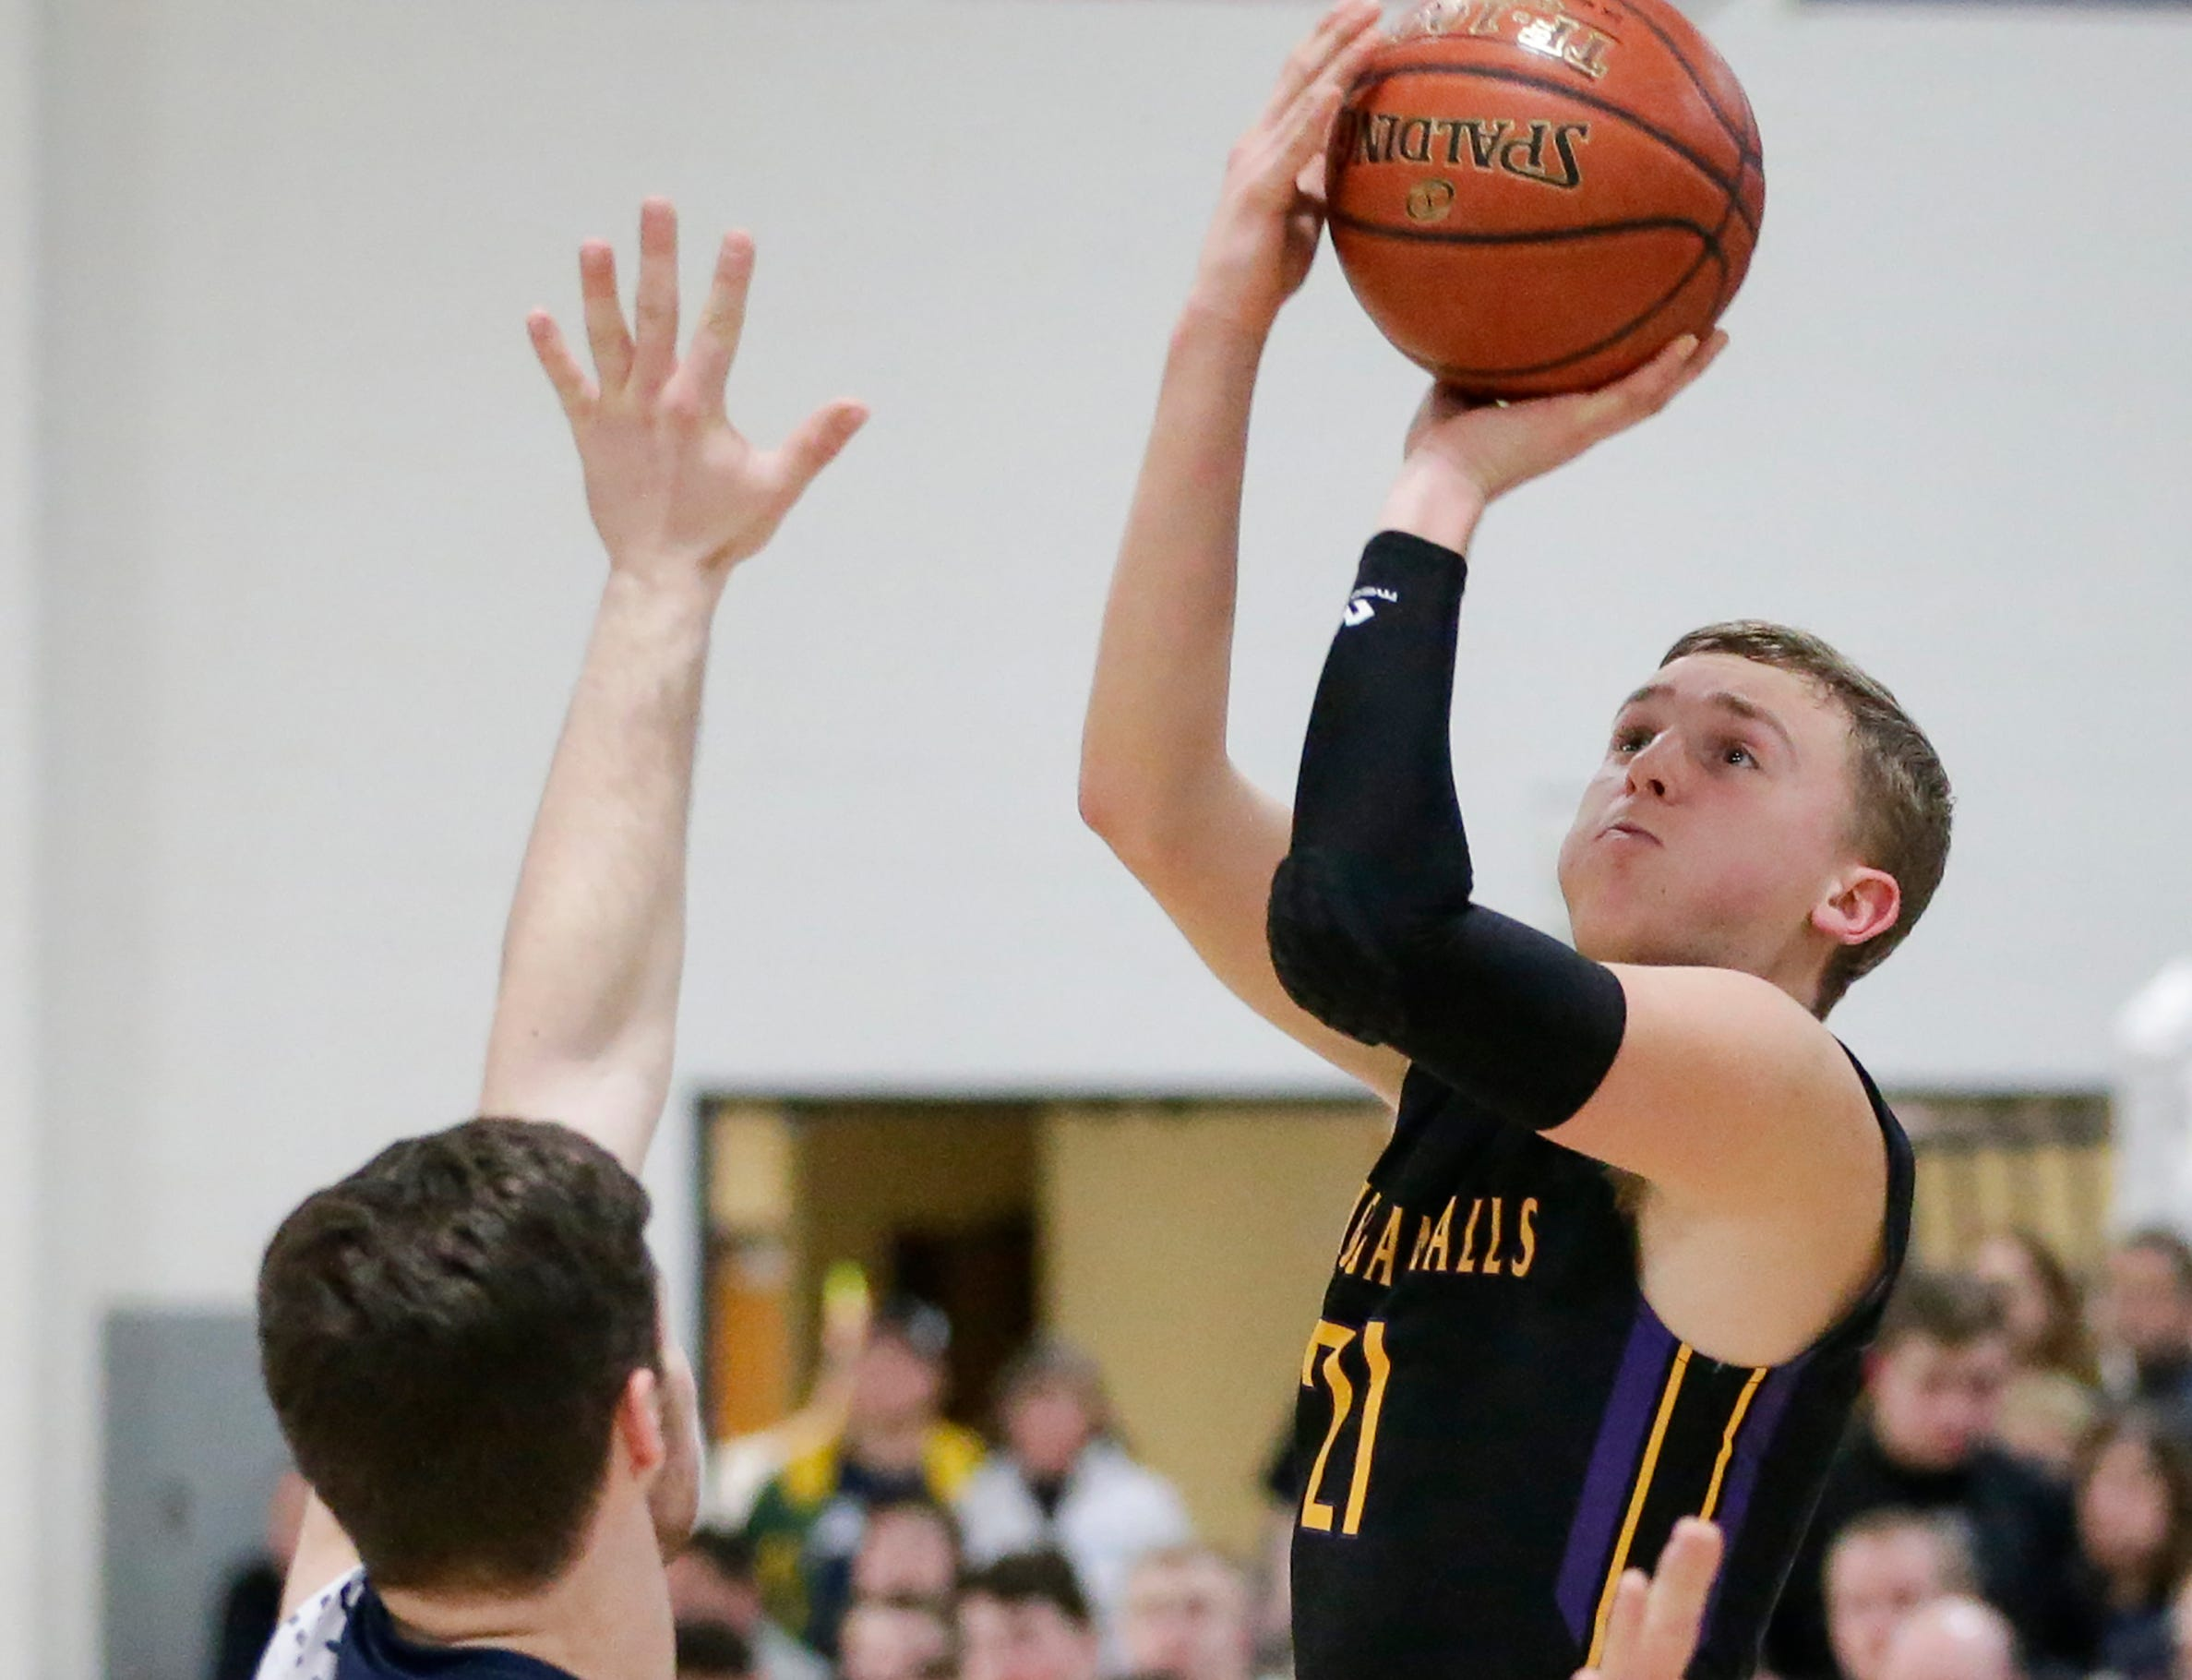 Sheboygan Falls' Connor Spielvogel (21) shoots against Roncalli during an EWC matchup at Roncalli High School Thursday, January 10, 2019, in Manitowoc, Wis. Joshua Clark/USA TODAY NETWORK-Wisconsin